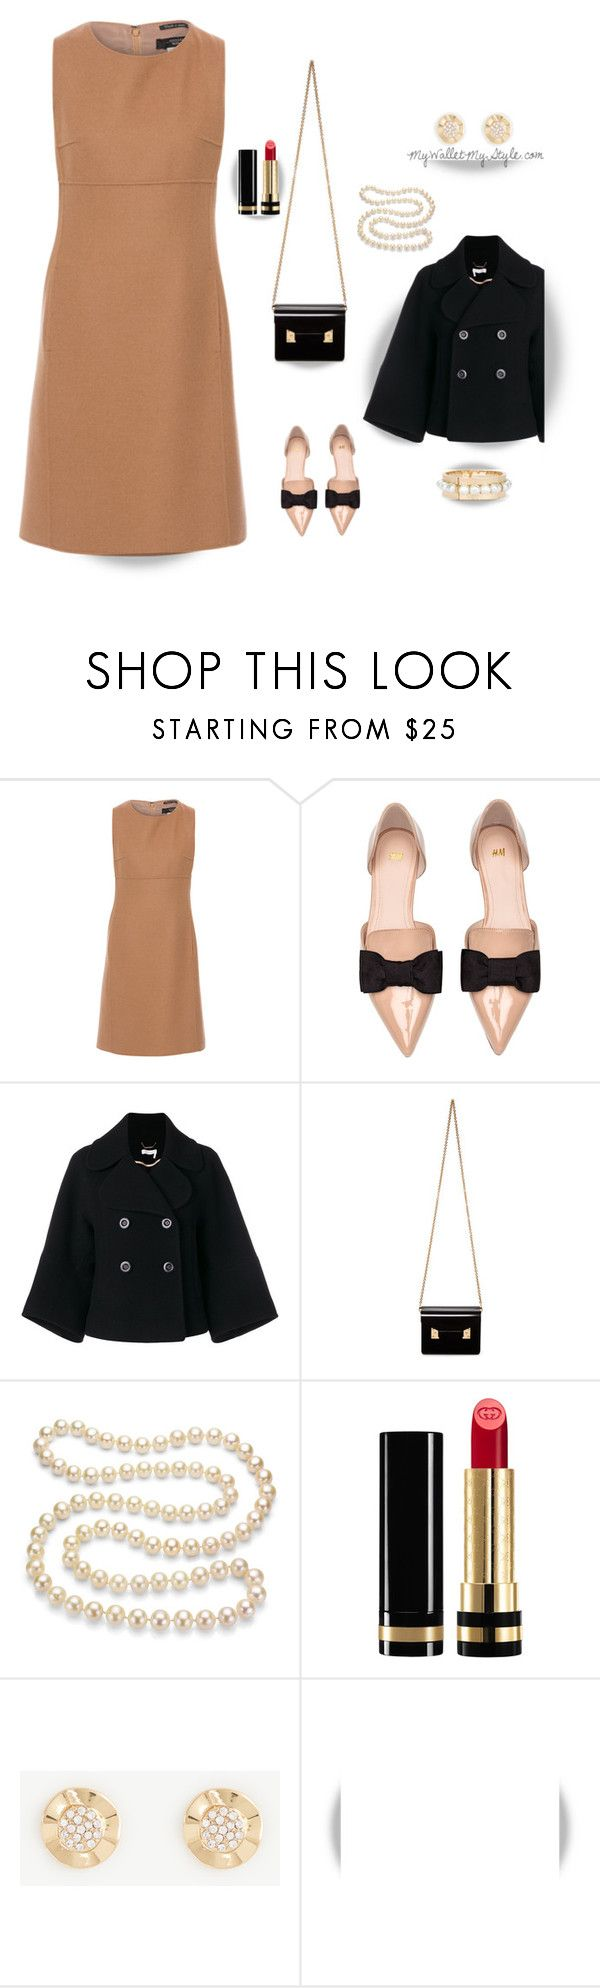 """""""Camel Wool"""" by mywalletmystyle ❤ liked on Polyvore featuring Weekend Max Mara, H&M, Chloé, Sophie Hulme, DaVonna, Gucci, Ann Taylor, WALL and Chico's"""